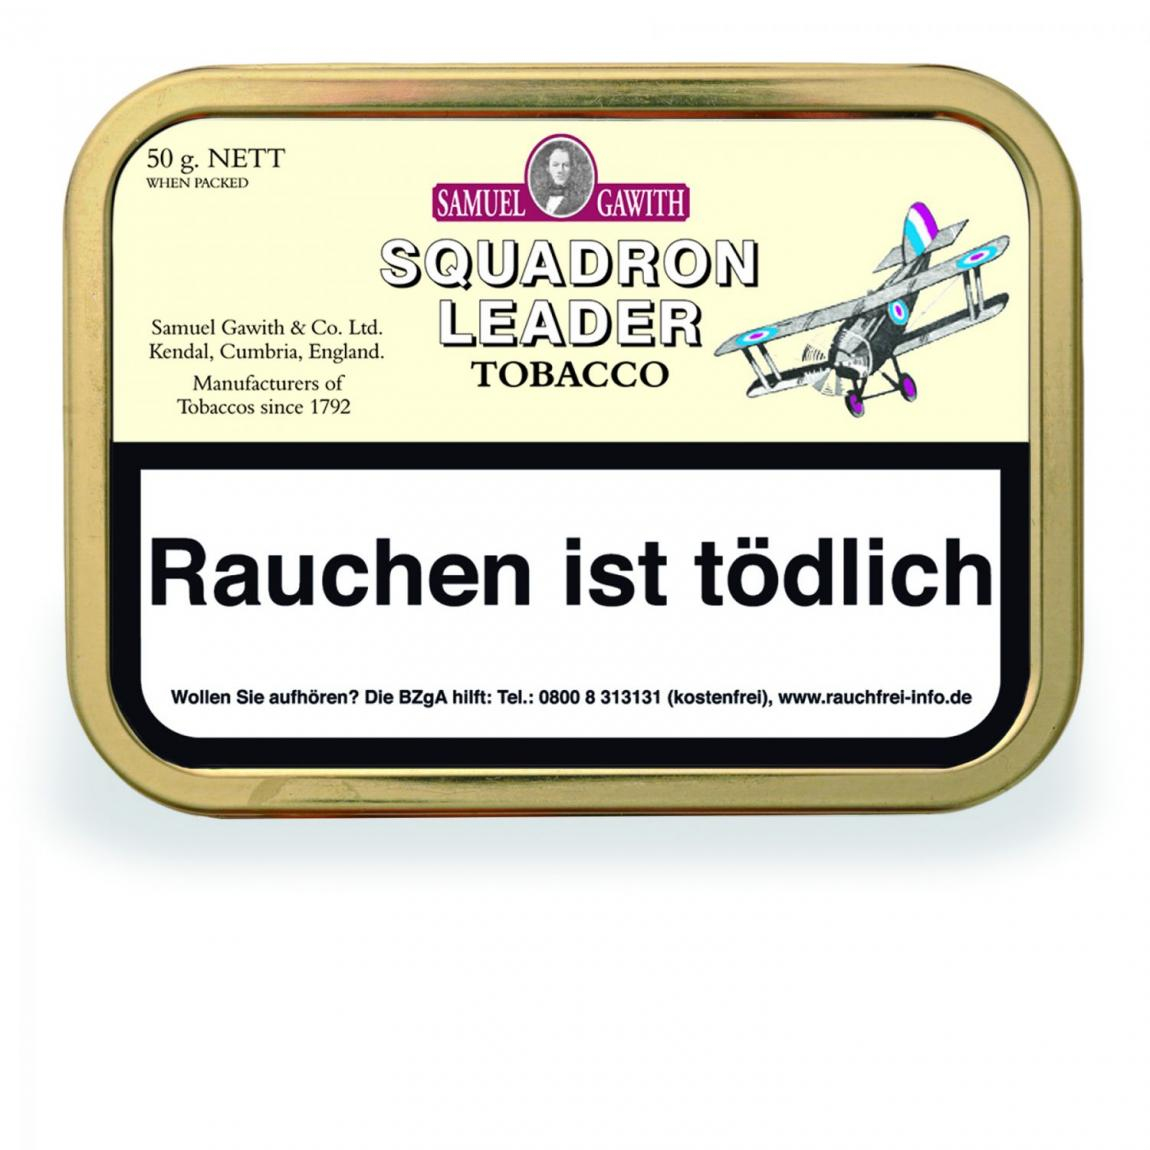 Samuel Gawith »Squadron Leader Tobacco« 50g Dose